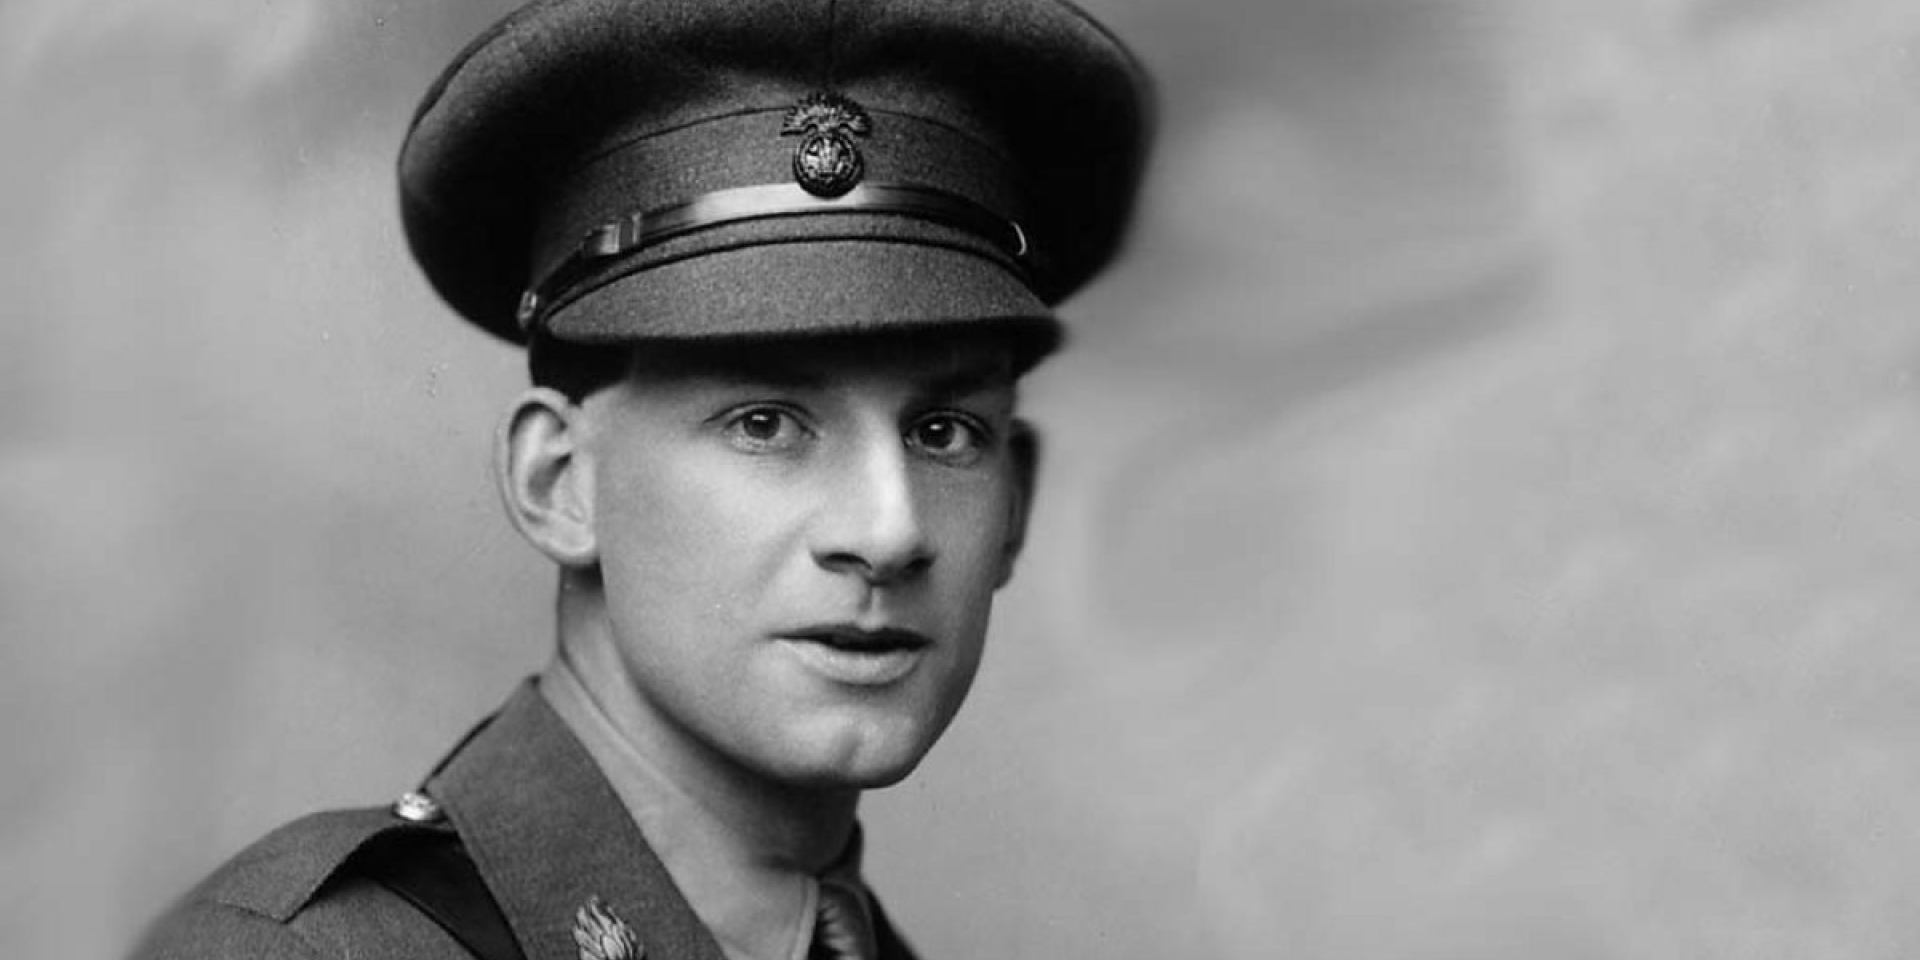 #ForgottenFriday: LGBTQ+ History Month Special: A man of his word, Siegfried Sassoon